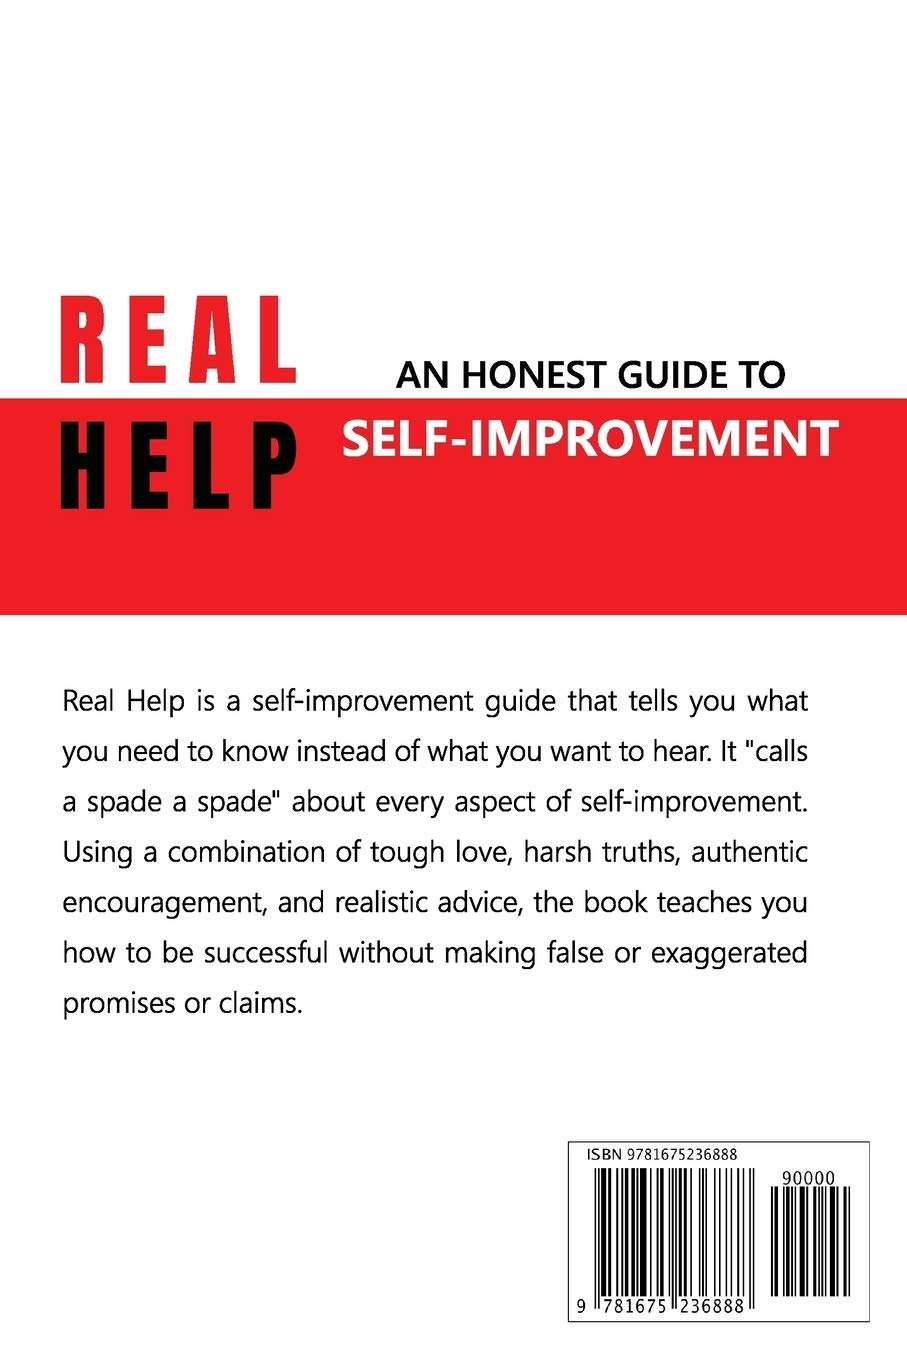 Real Help: An Honest Guide to Self-Improvement: Awosika, Ayodeji: 9781675236888: Amazon.com: Books